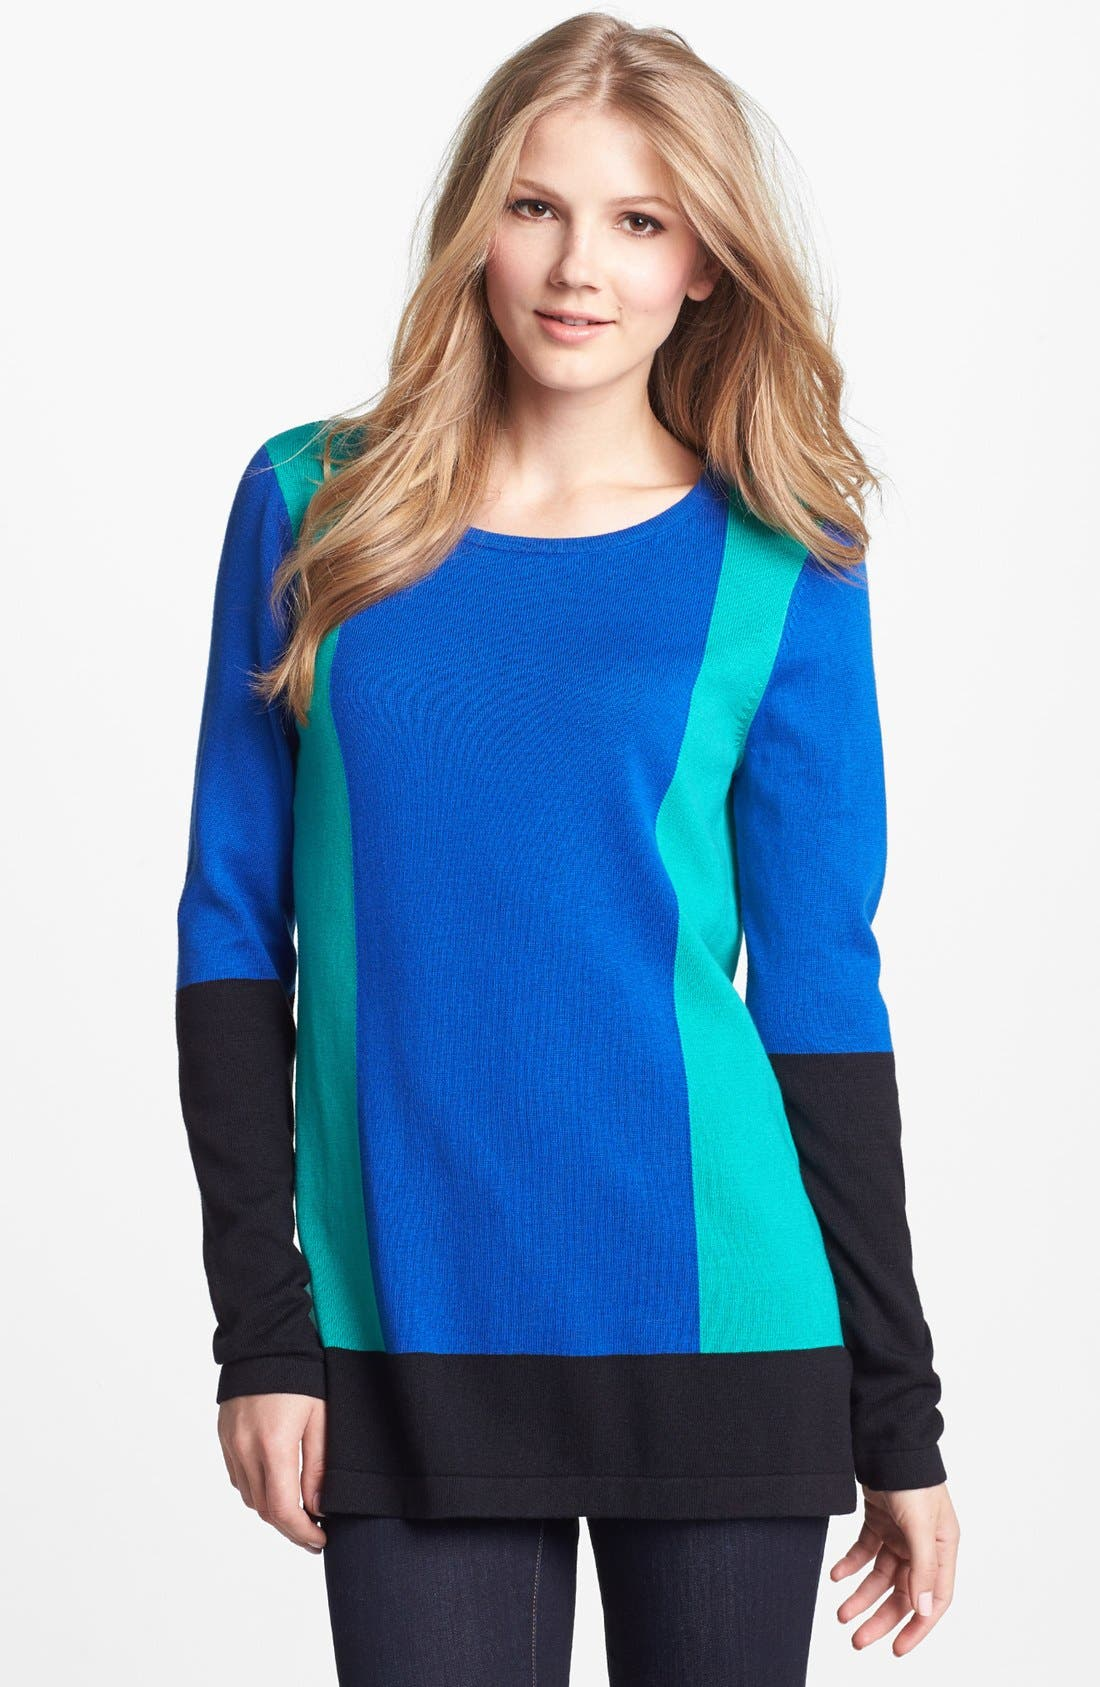 Main Image - Vince Camuto Colorblock Cotton Blend Sweater (Petite)